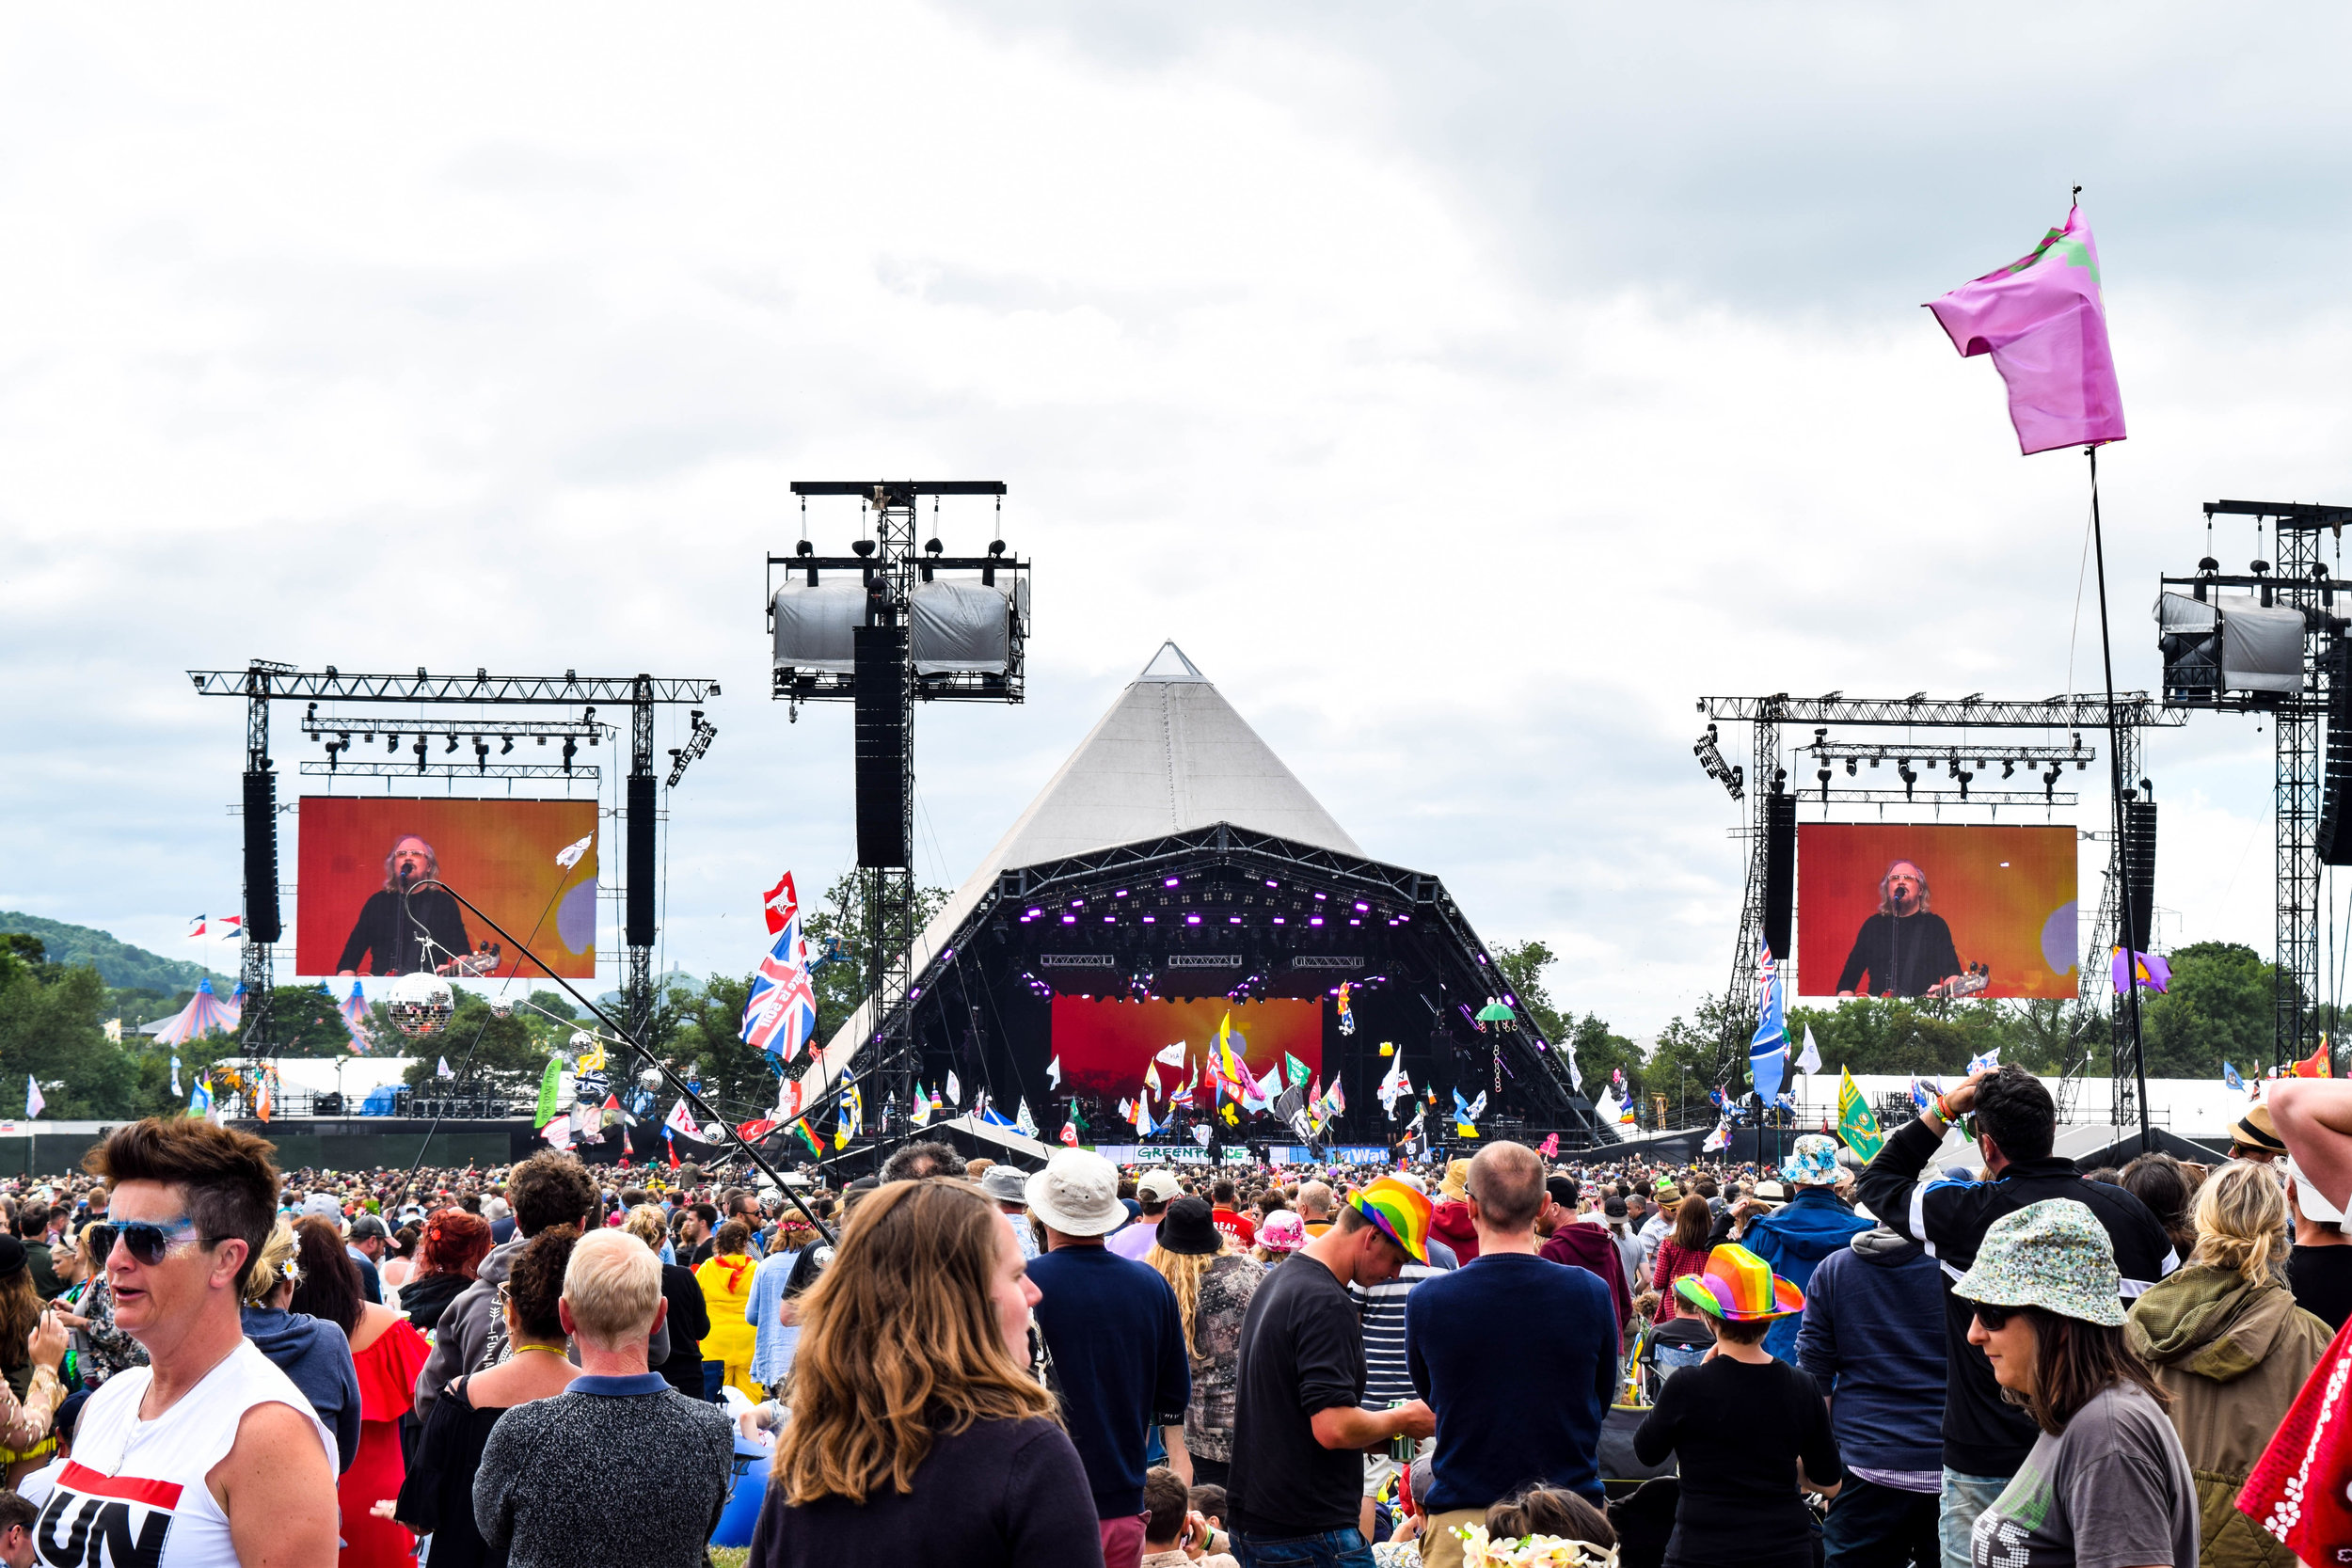 3. The Pyramid Stage -